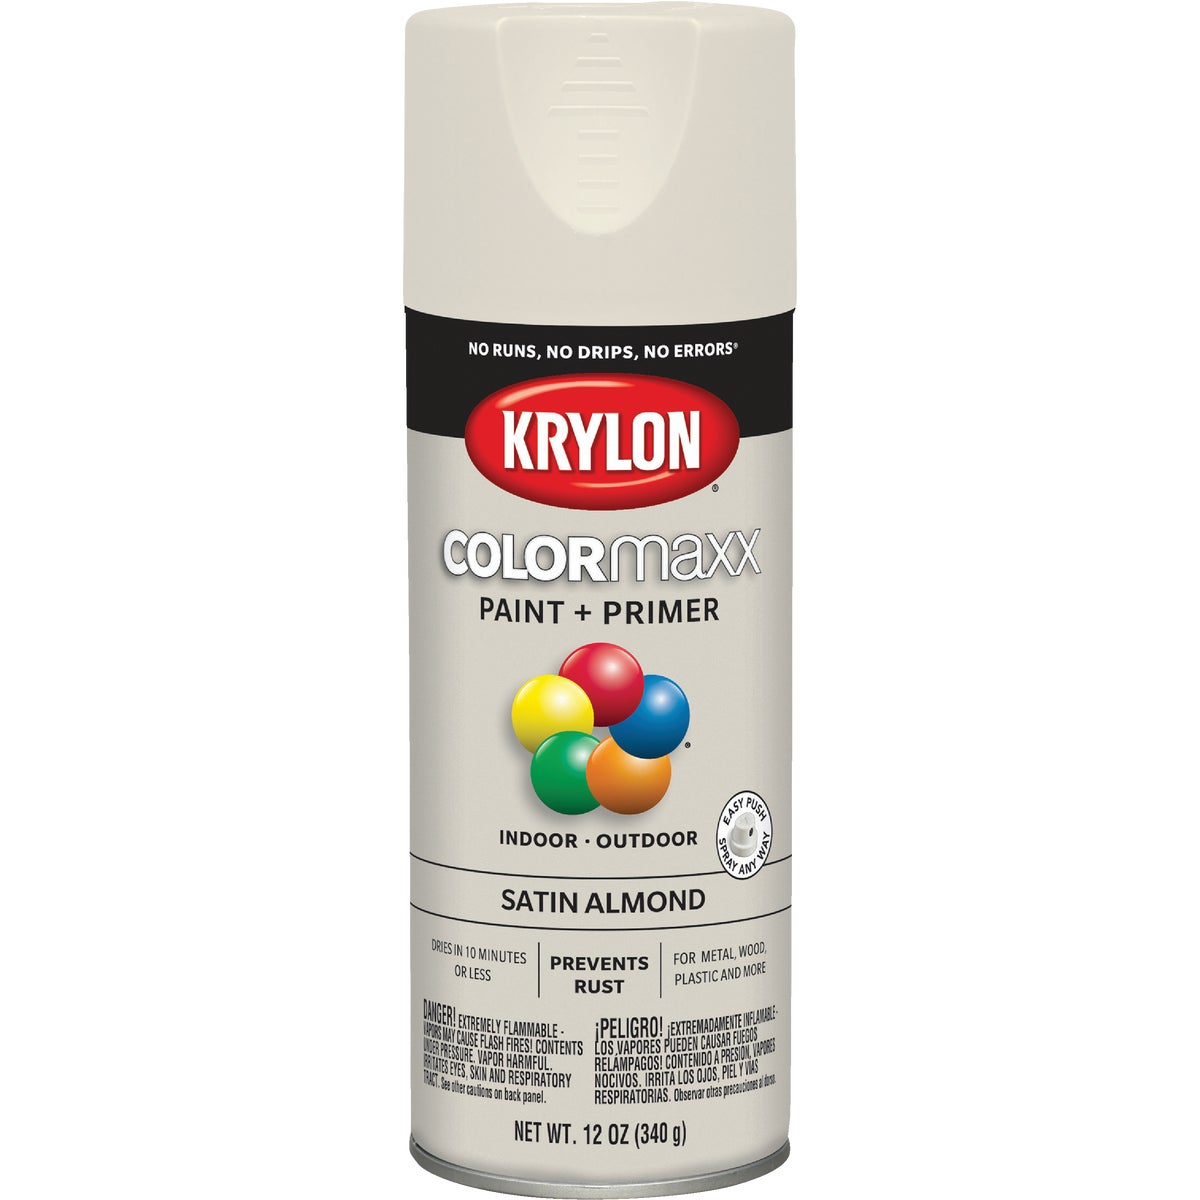 SATIN ALMOND SPRAY PAINT - 53511 by Krylon/consumer Div